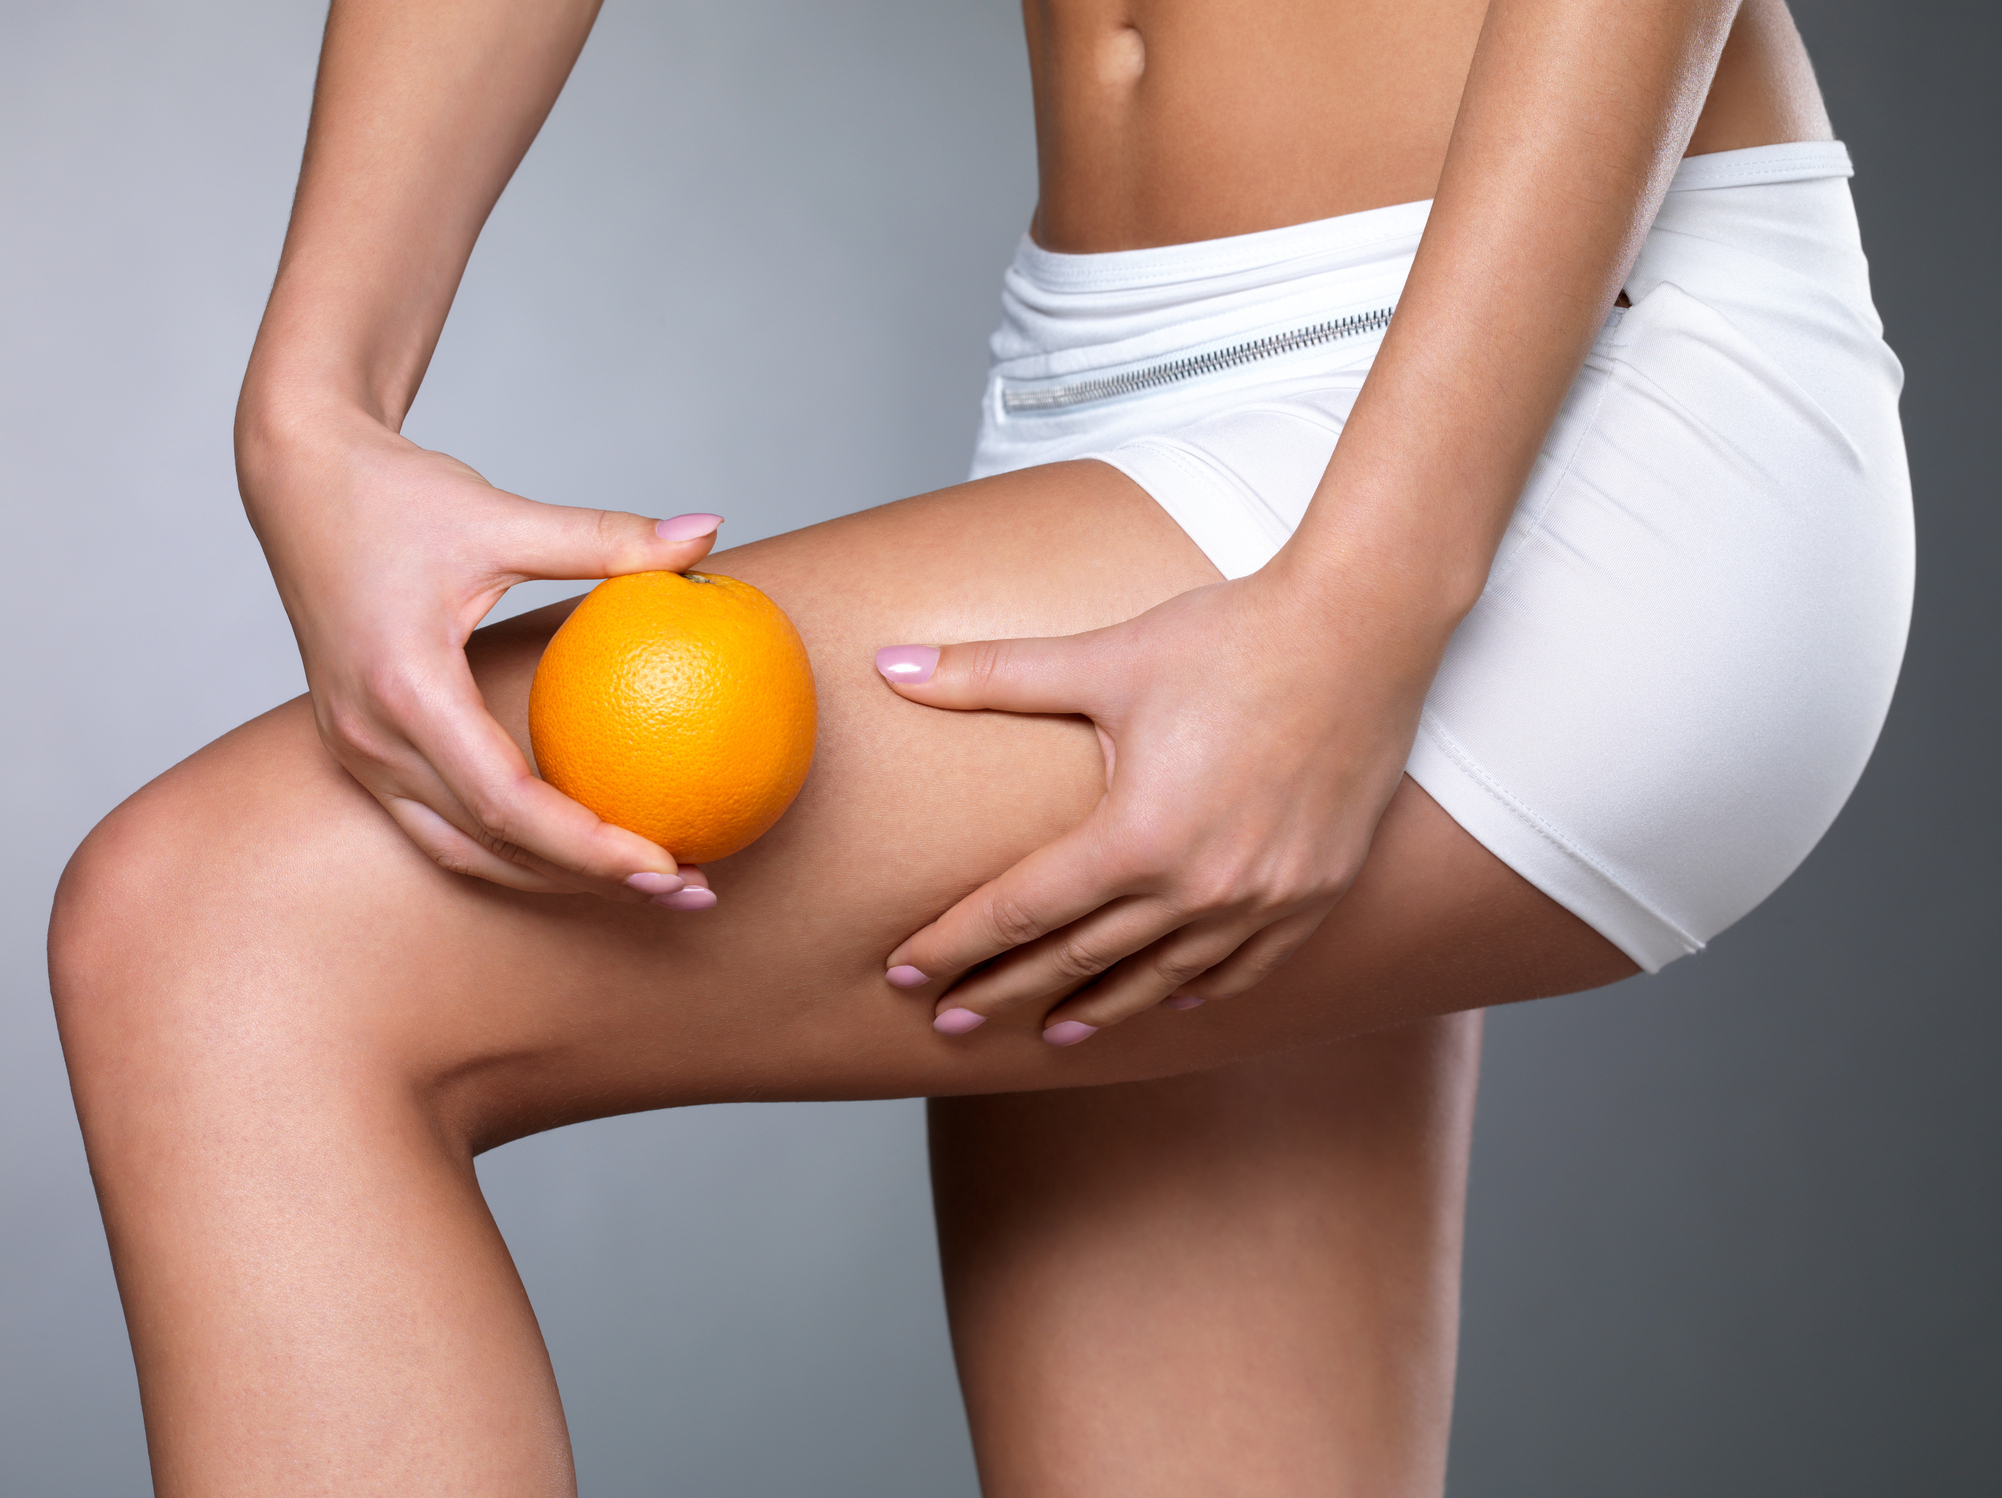 Solid Advice For Getting Rid Of Cellulite